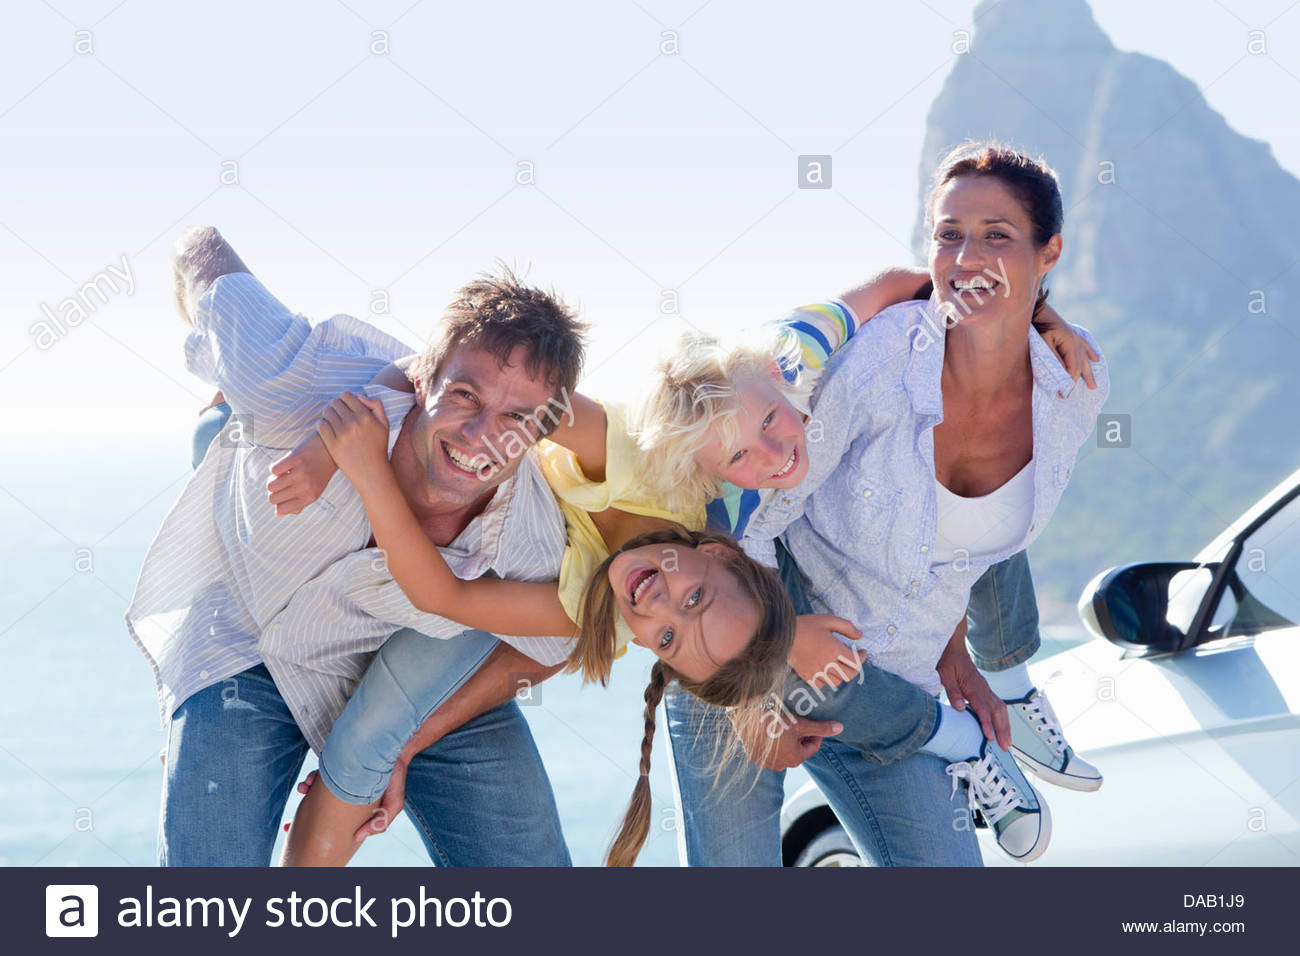 Portrait of happy family next to car with ocean in background - Stock Image